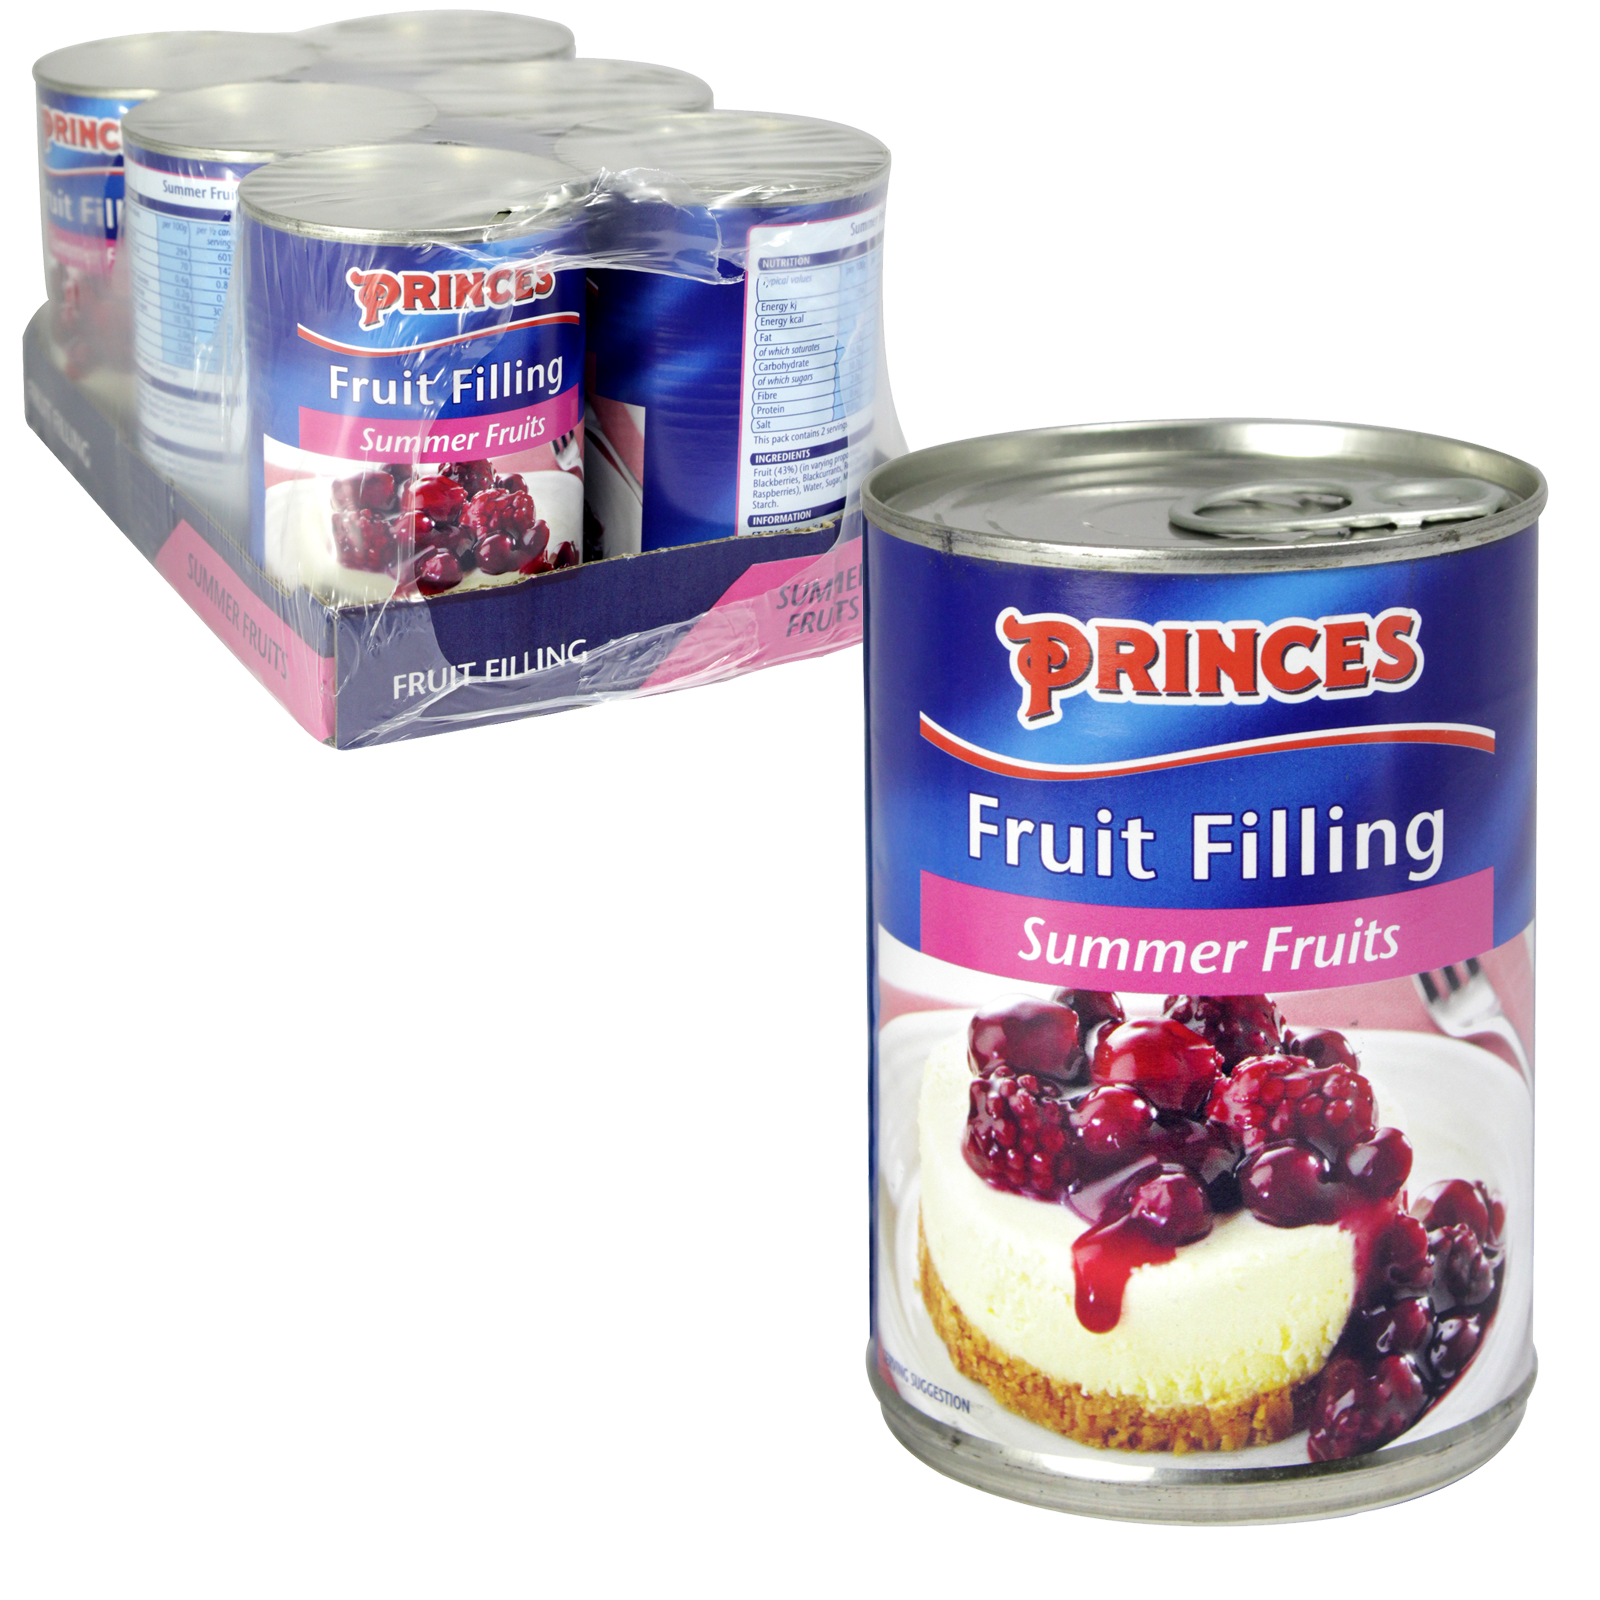 PRINCES FRUIT FILLING SUMMER FRUITS X6